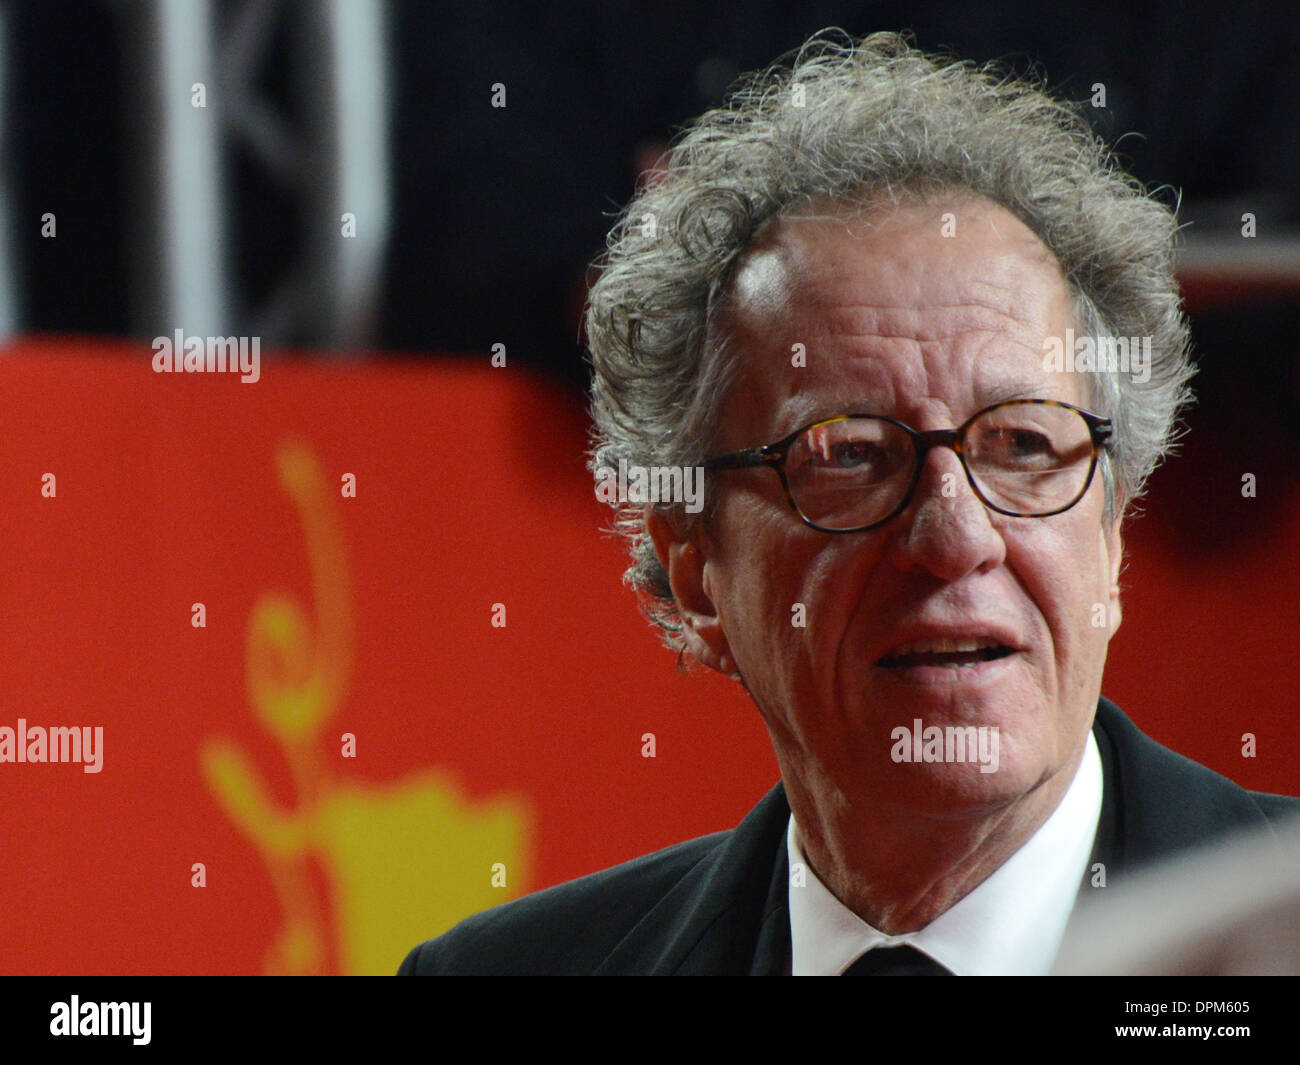 Geoffrey Rush - 63rd Annual Berlinale International Film Festival, 'The Best Offer' Premiere, Berlin - February 12th 2013 - Stock Image